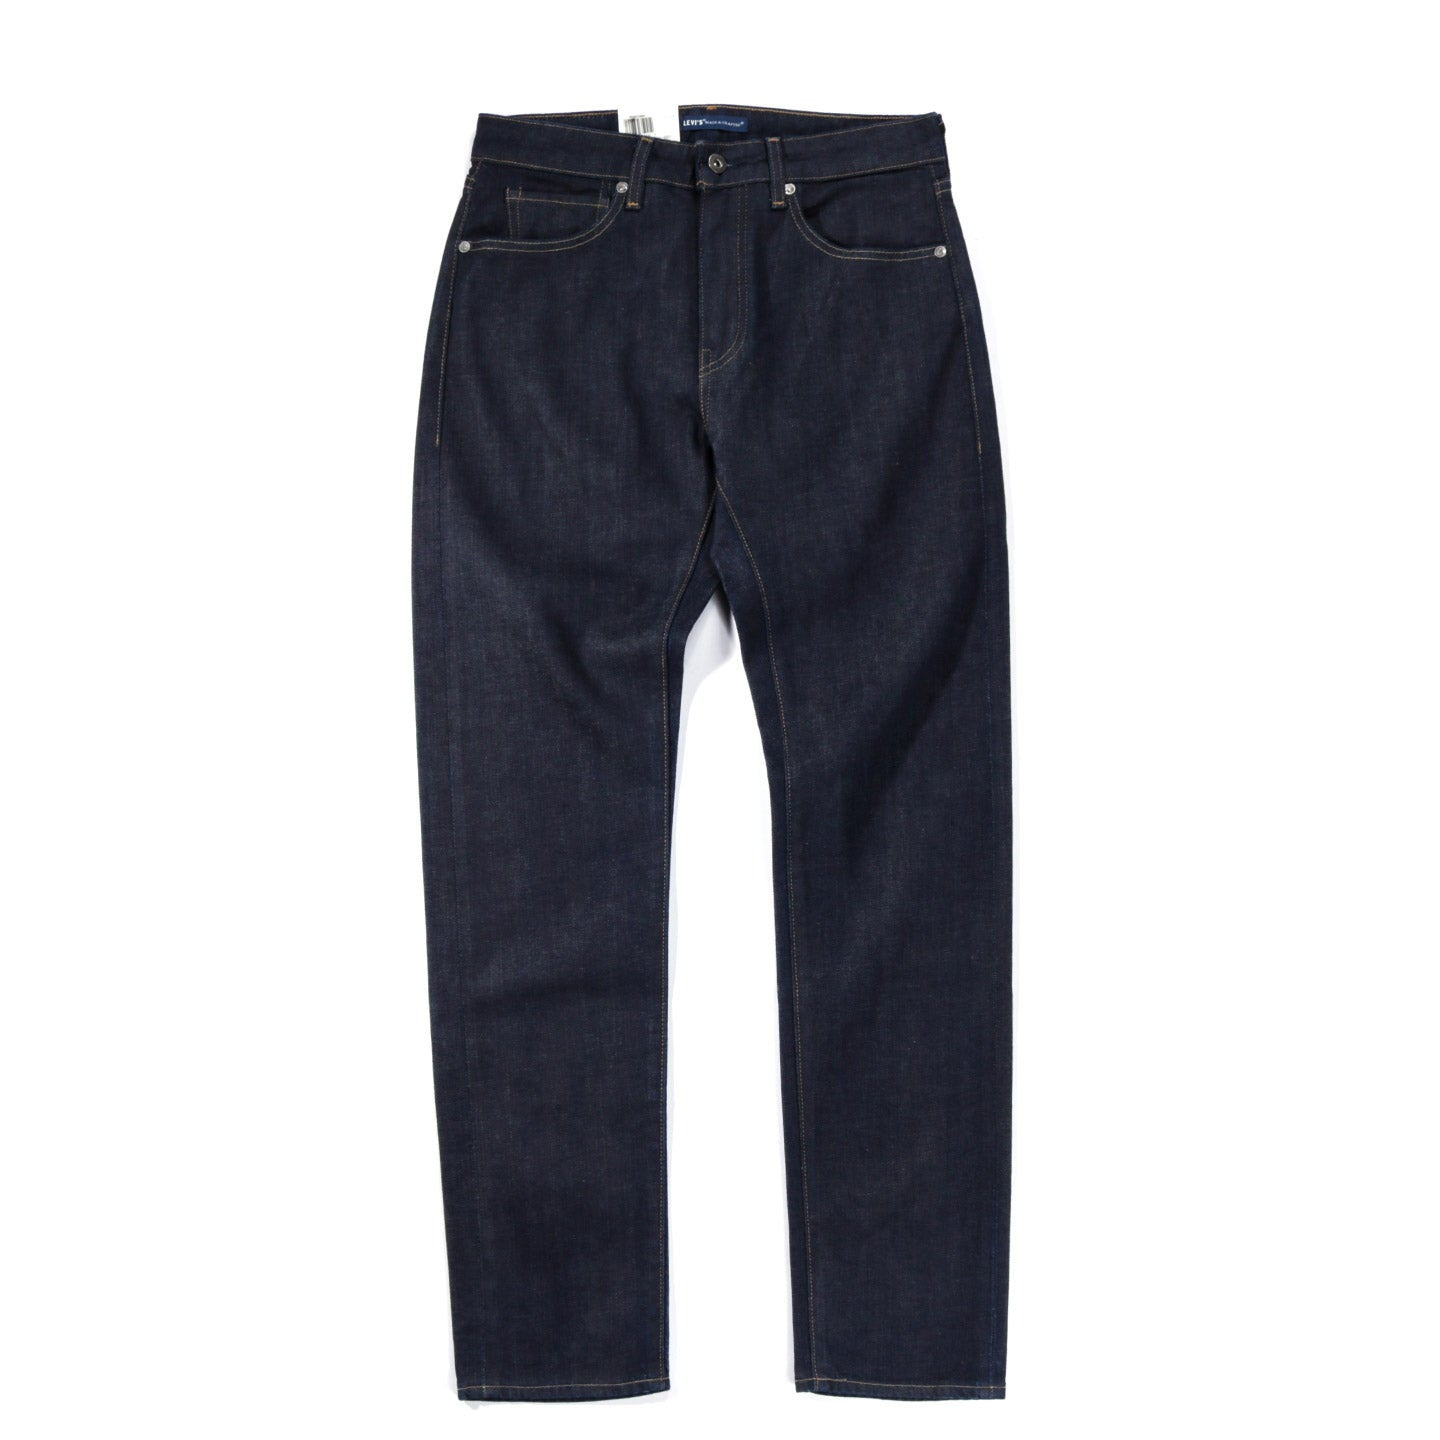 LEVI'S MADE & CRAFTED TACK INDIGO RESIN RINSE